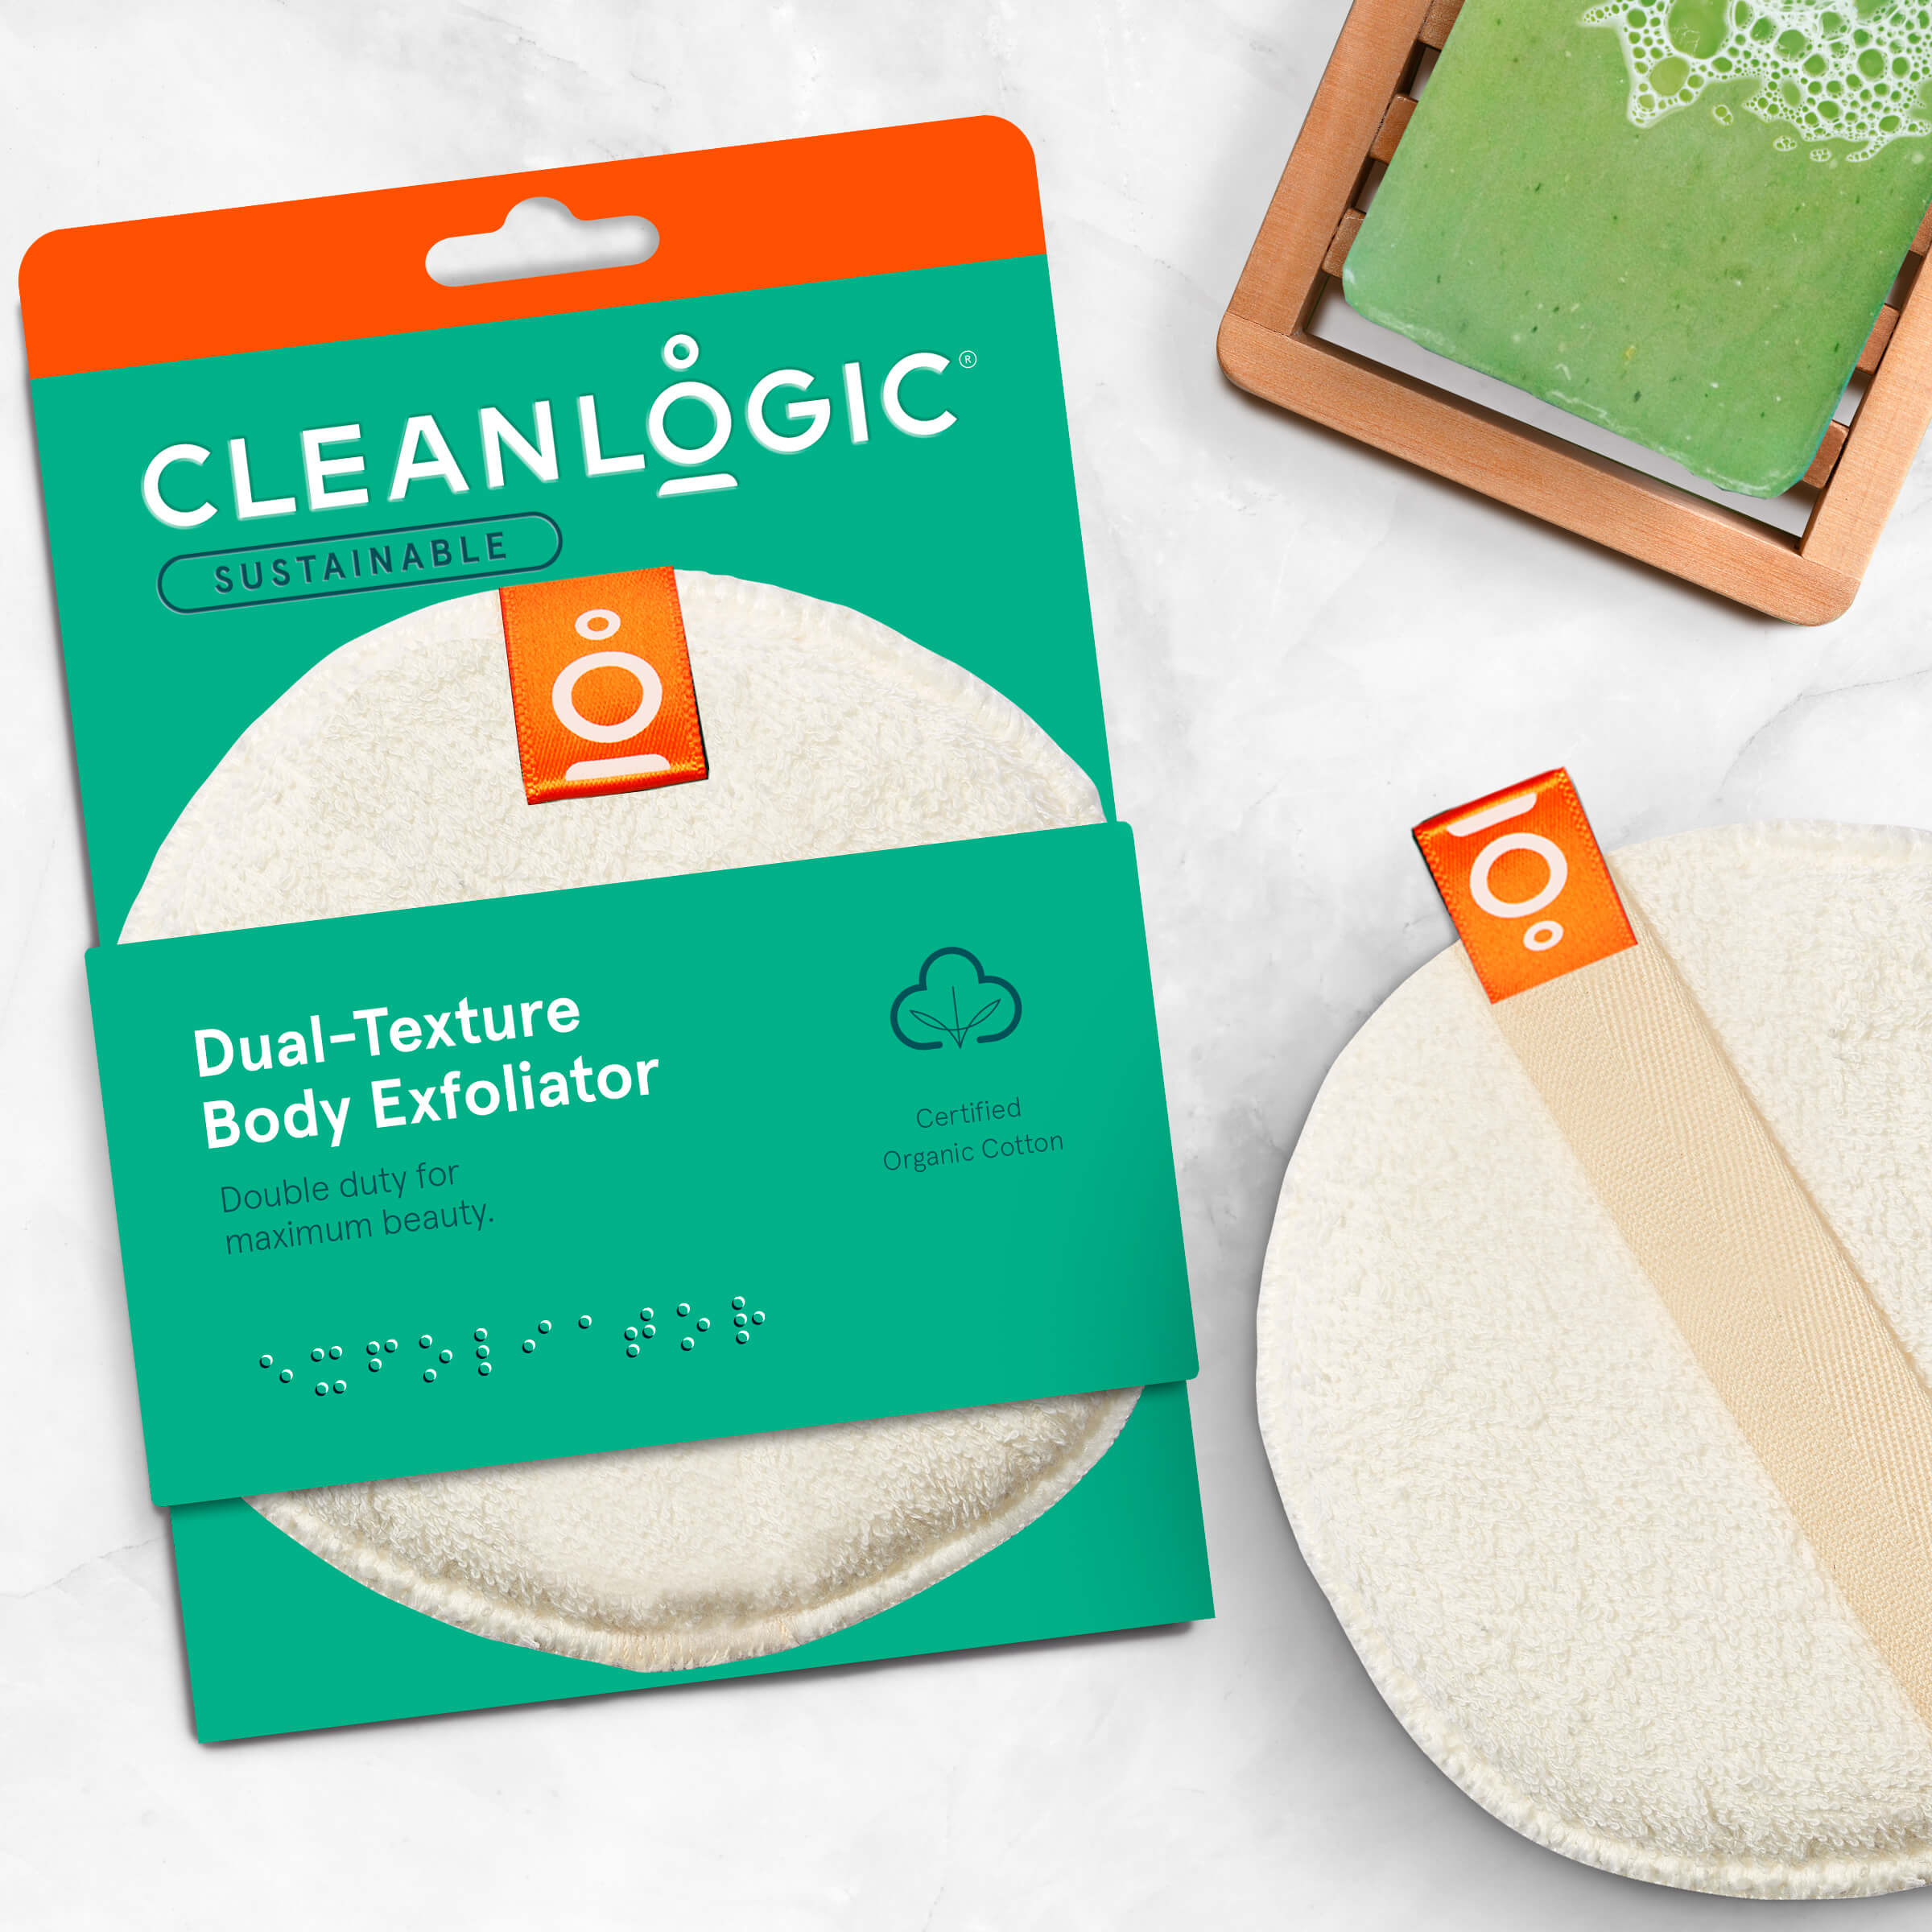 Cleanlogic Sustainable Dual-Texture Body Exfoliator